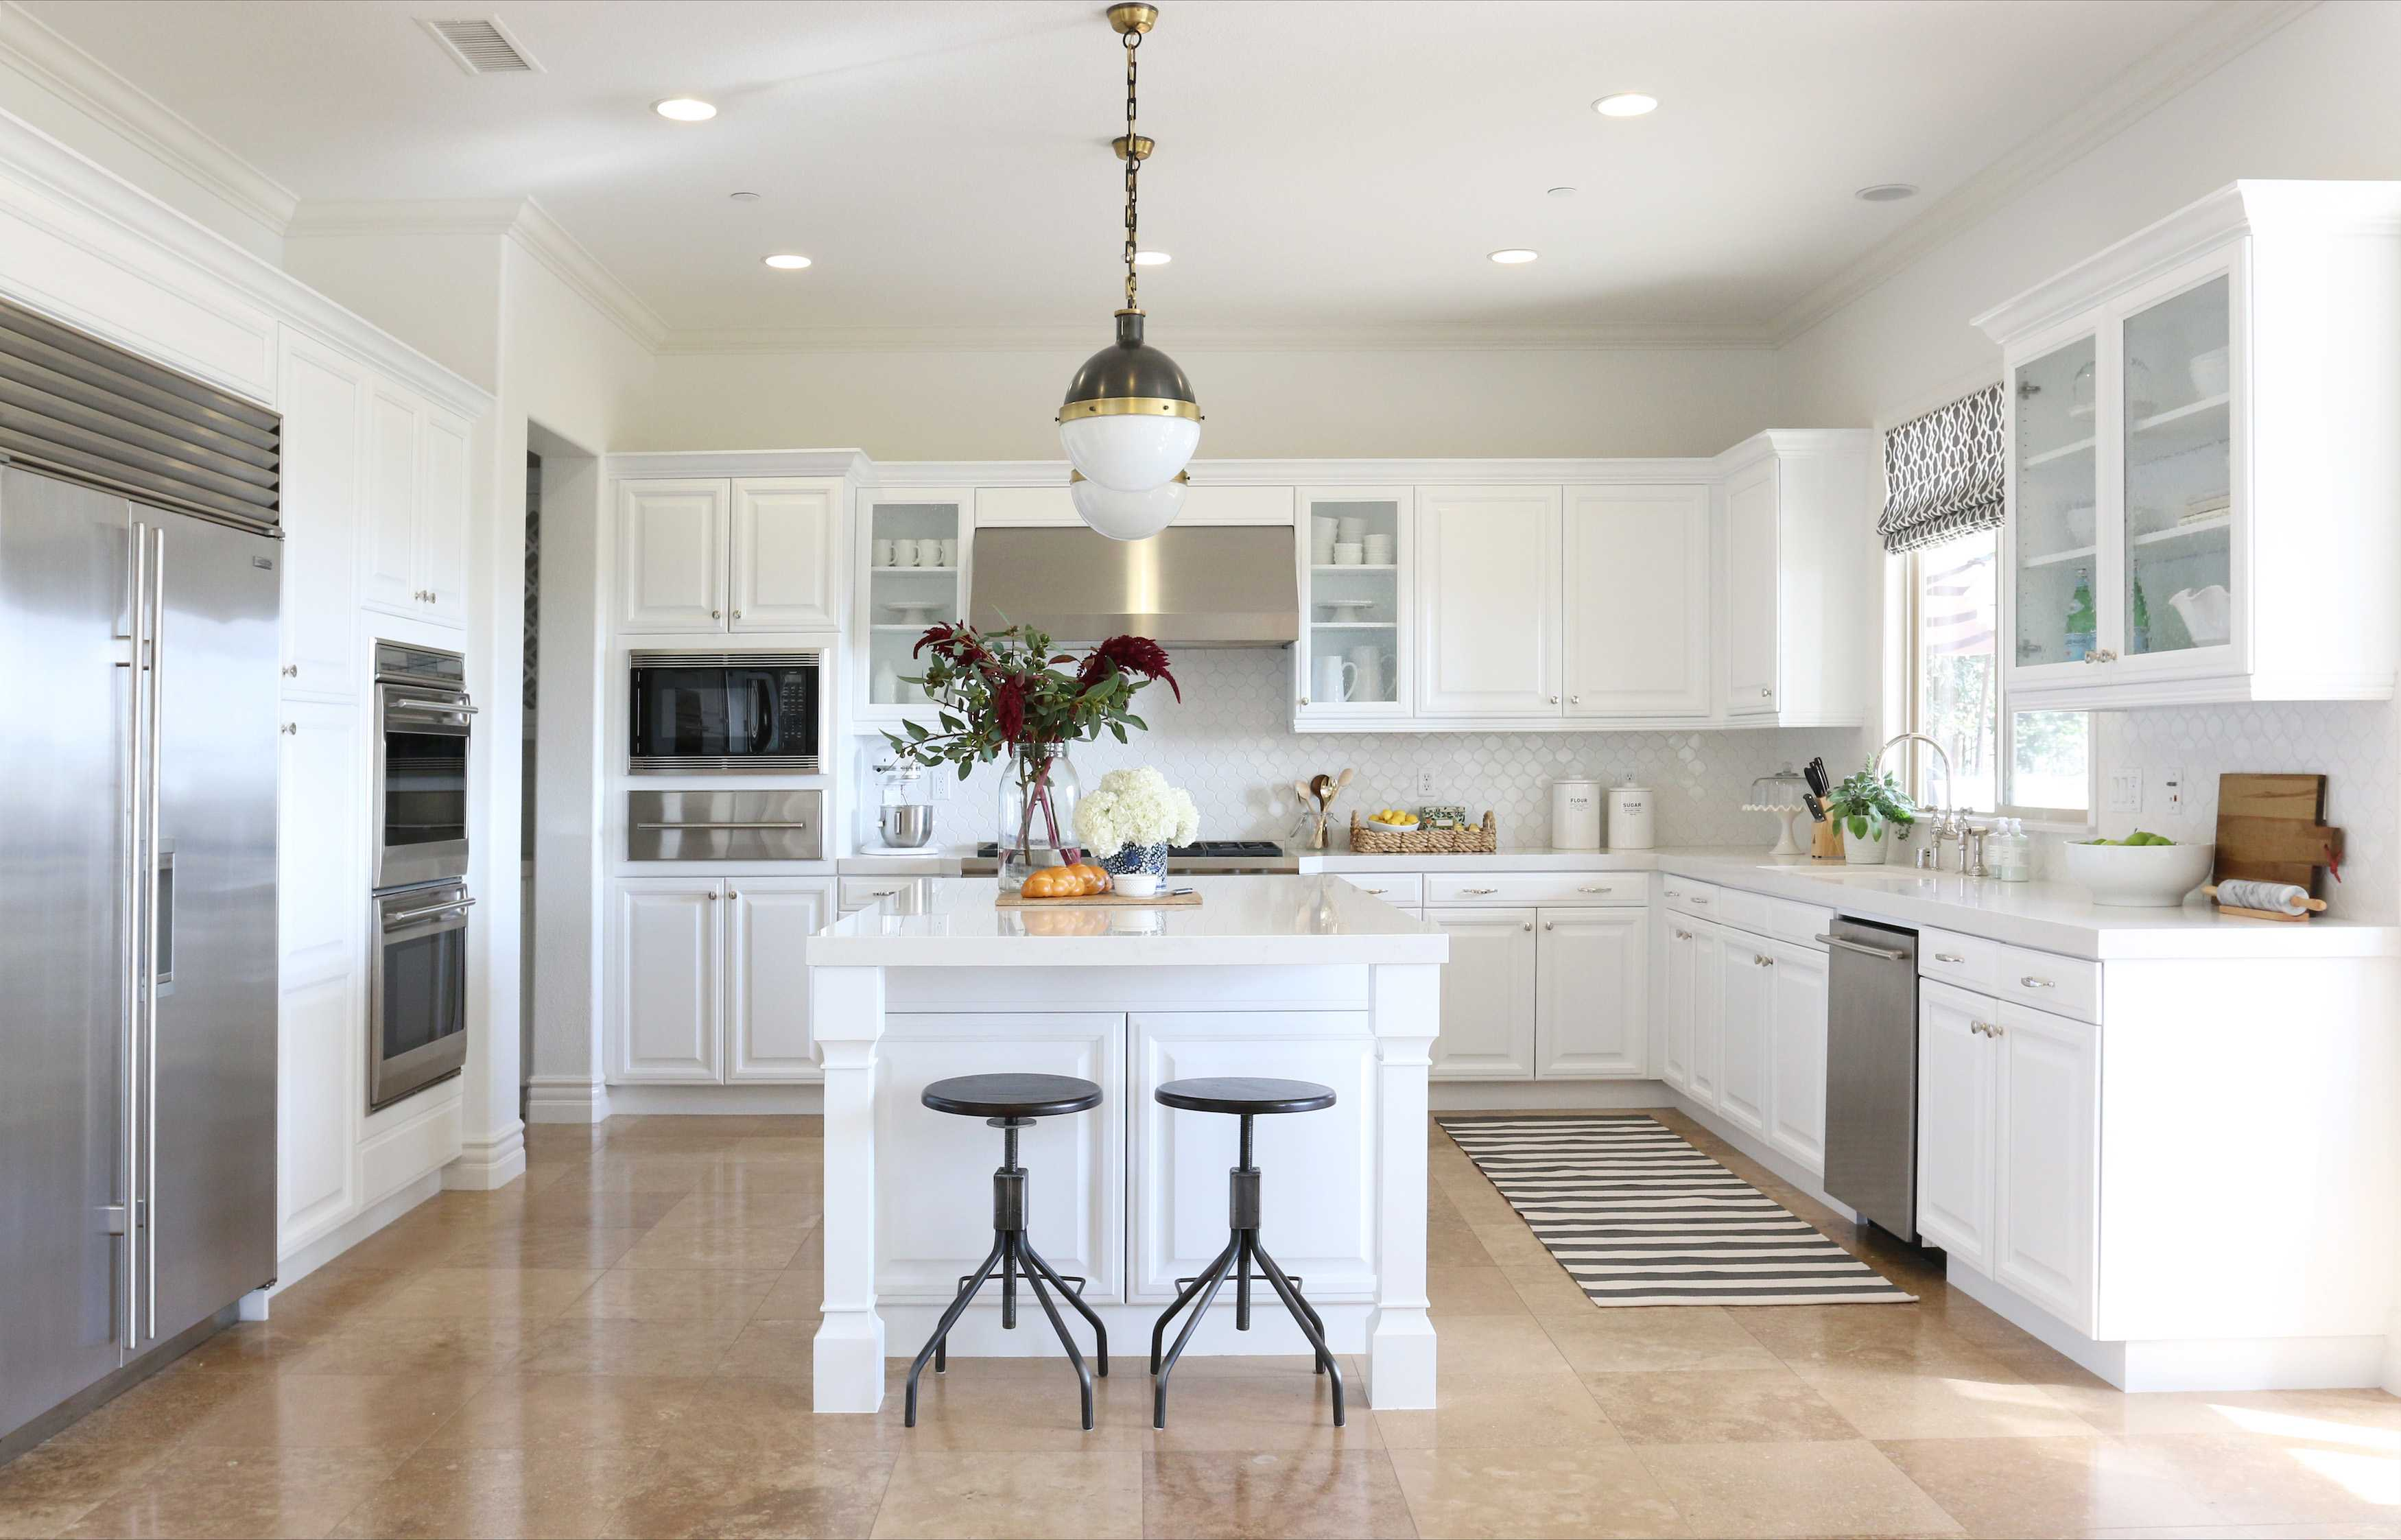 16 Stylish Ideas For Decorating White Kitchen